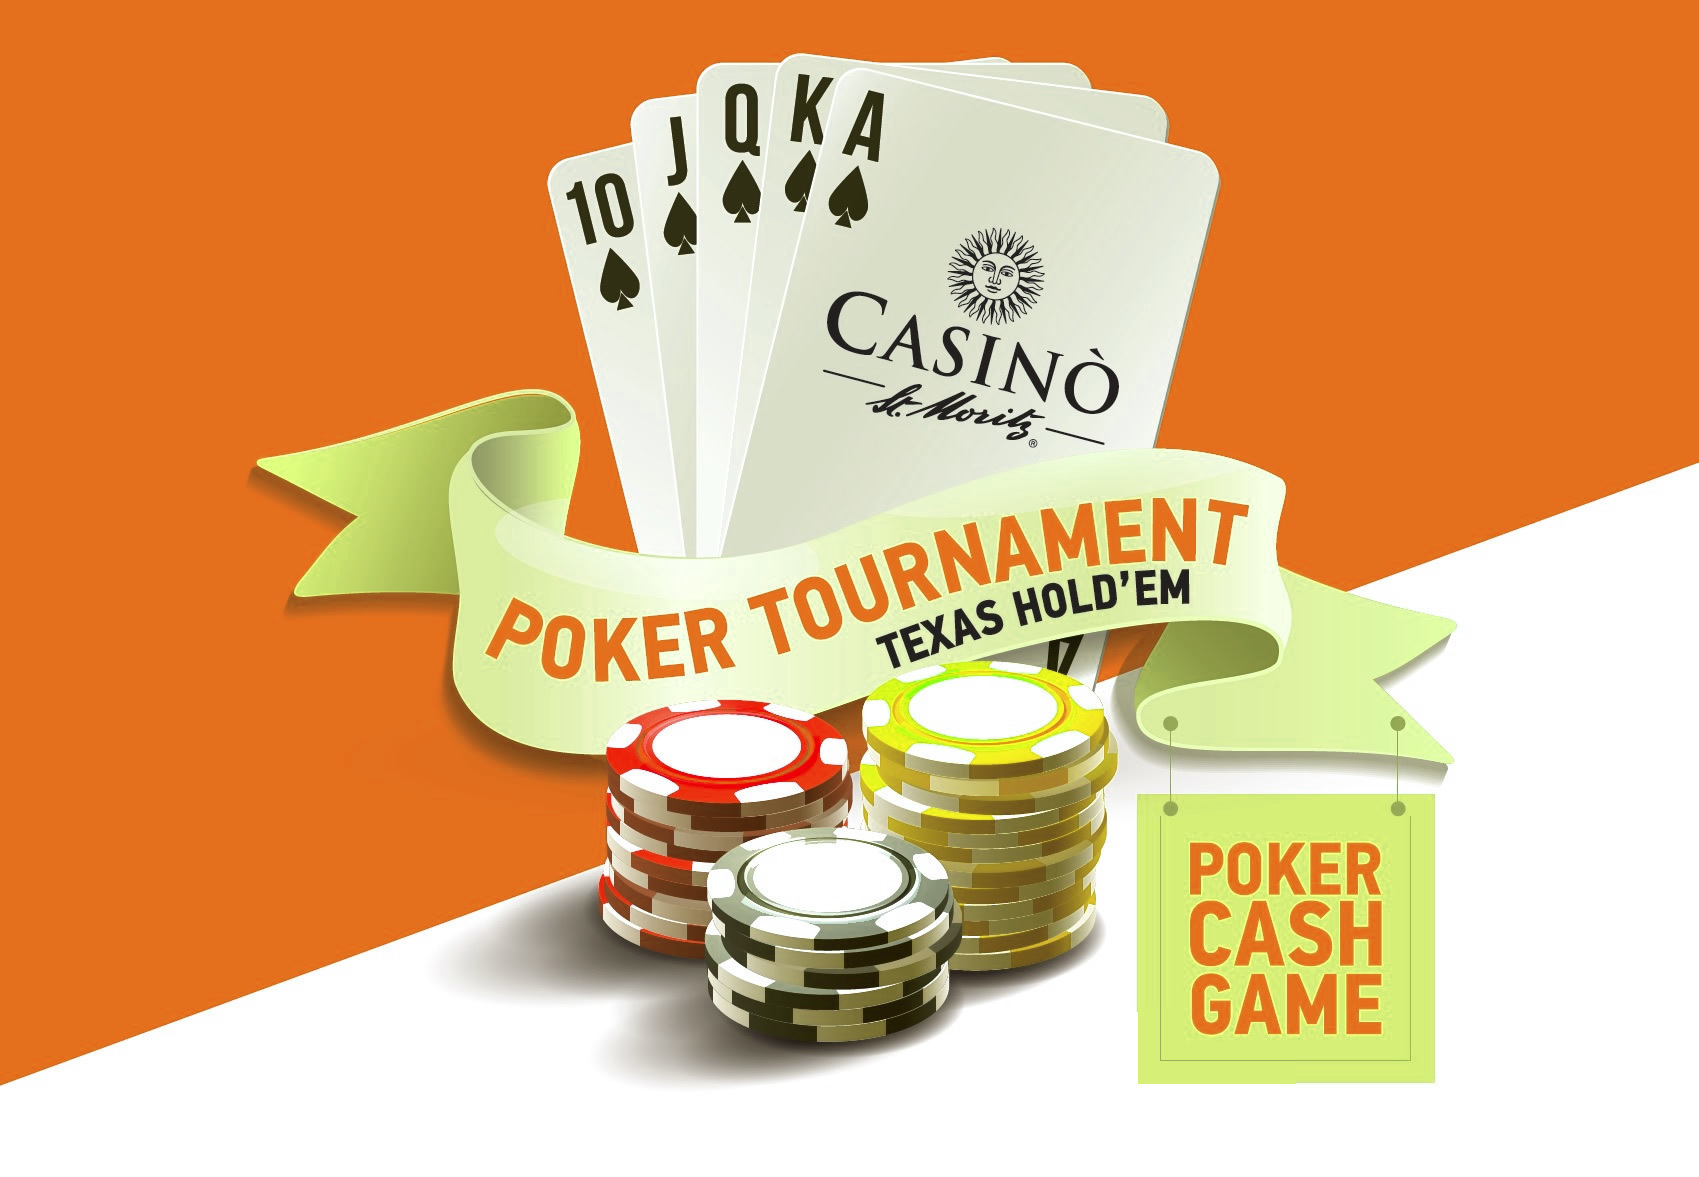 Casino: Texas Hold´em Poker Tournament